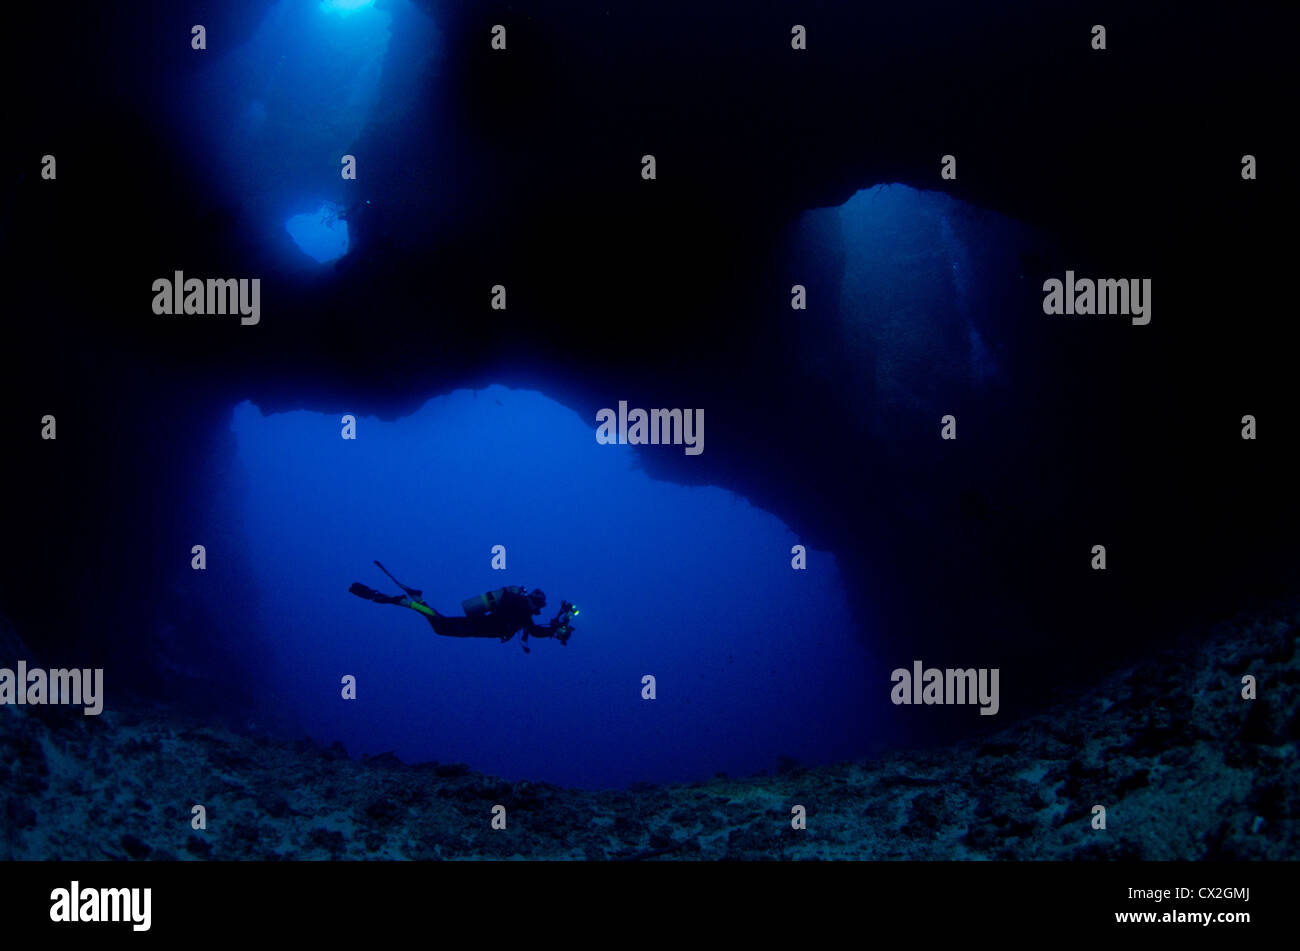 underwater scene of Palau, coral reefs, cave, cavern, diver, silhouette, scuba, diving, blue water, clear water, - Stock Image